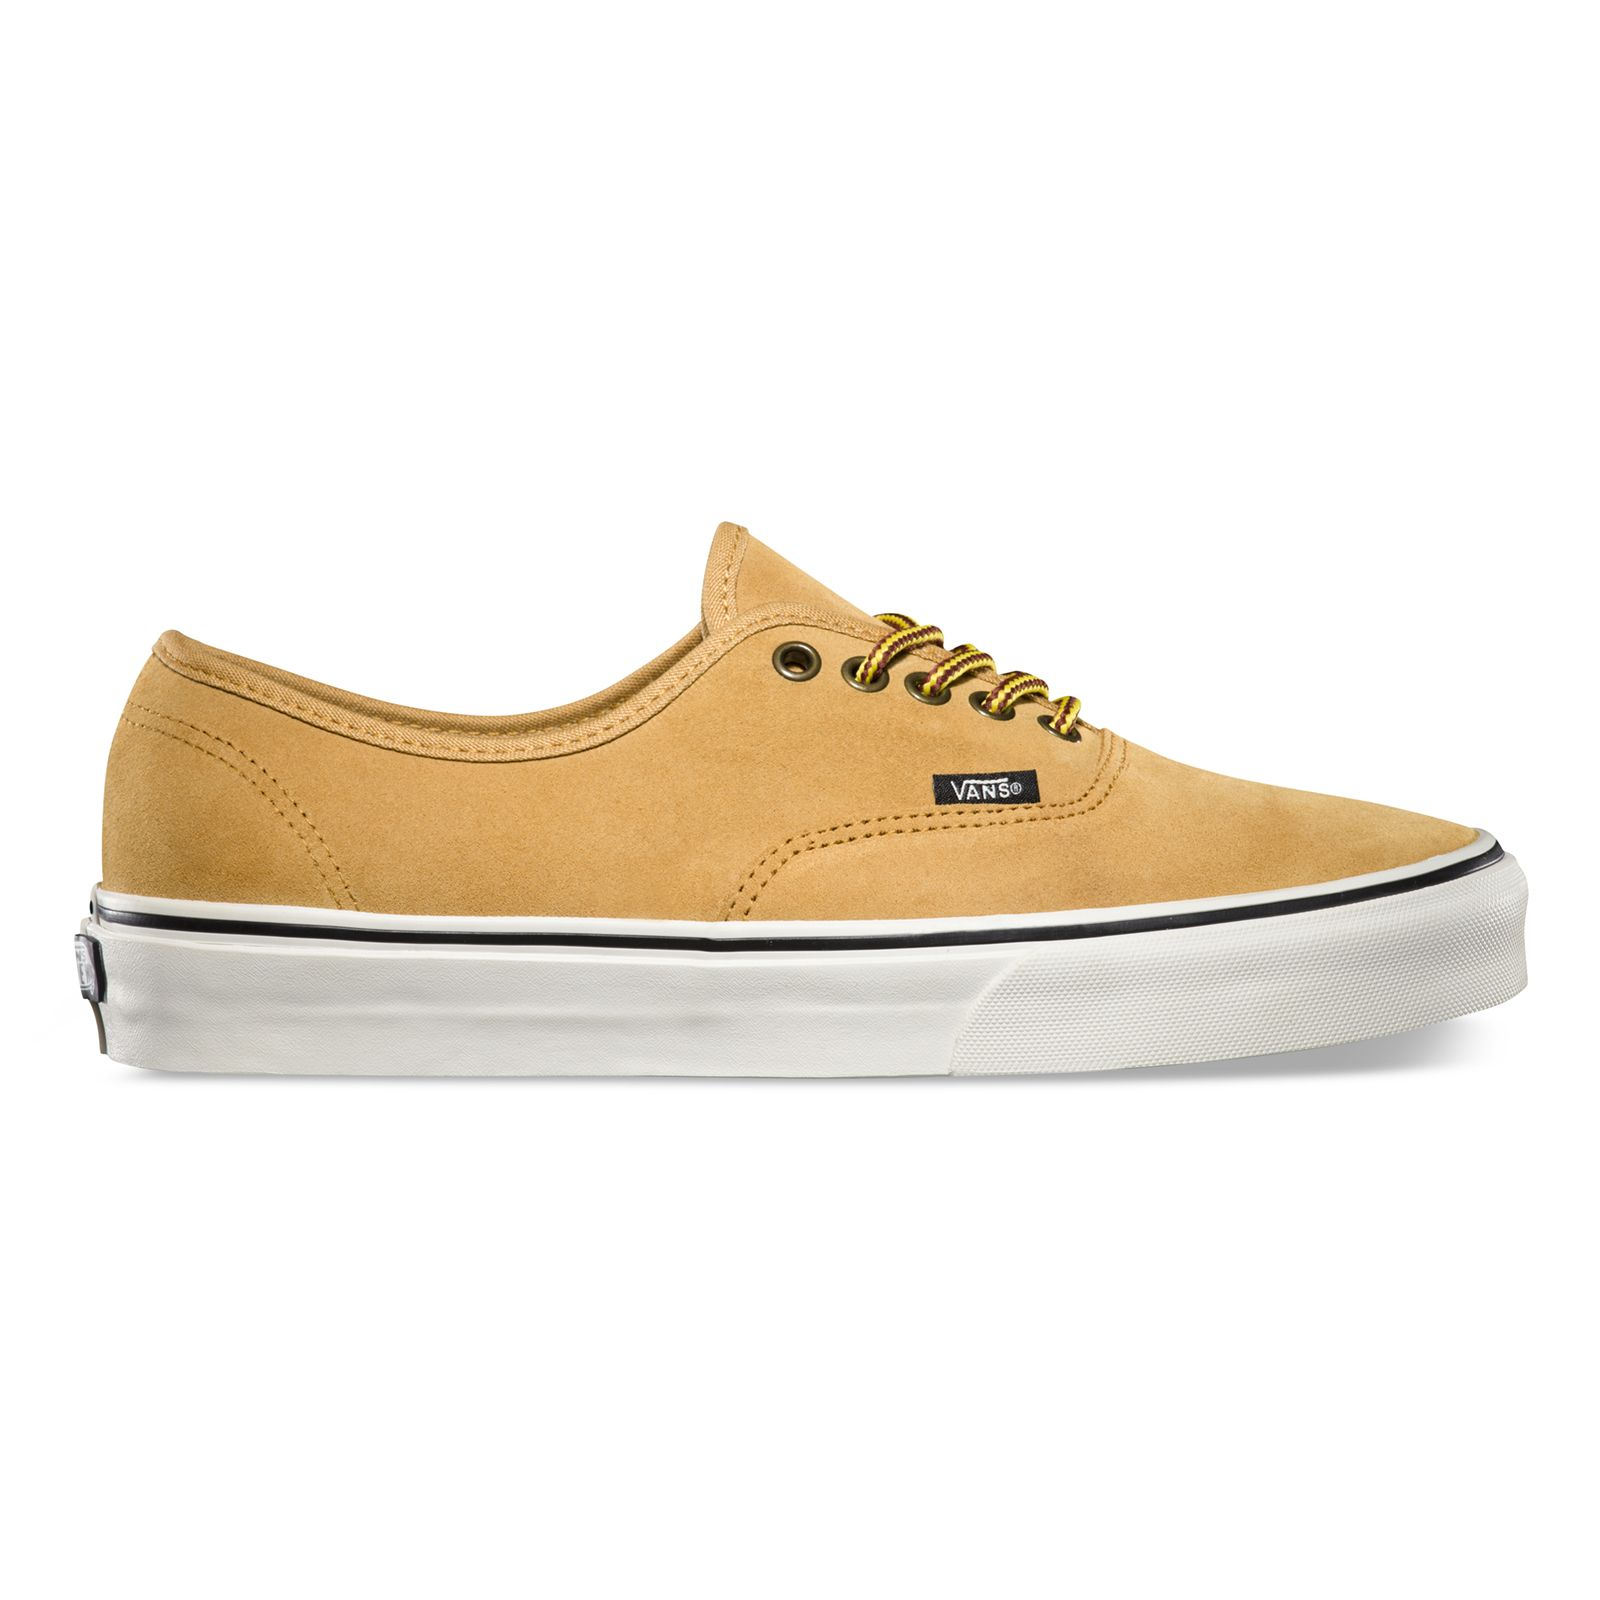 0a70904862bcb8 Vans Hiker Authentic in Suede   Tan